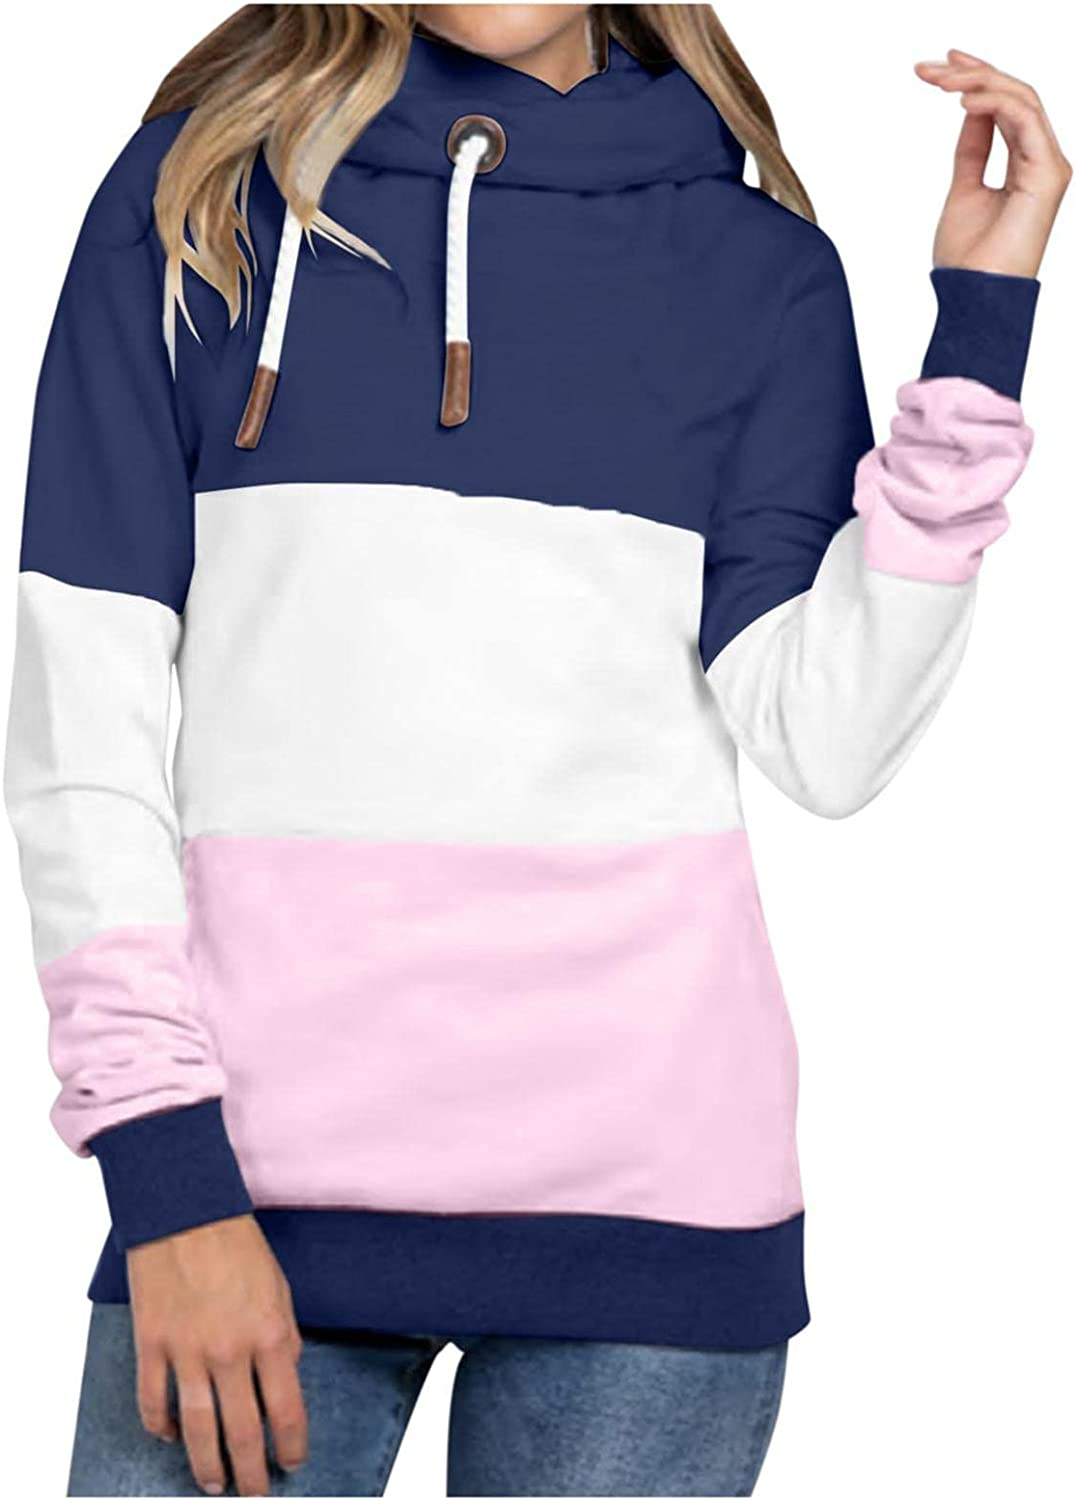 felwors Hoodies for Women, Womens Loose Casual Comfy Sweatshirts Pullover Long Sleeve Fall Hoodies Color Block Tunics